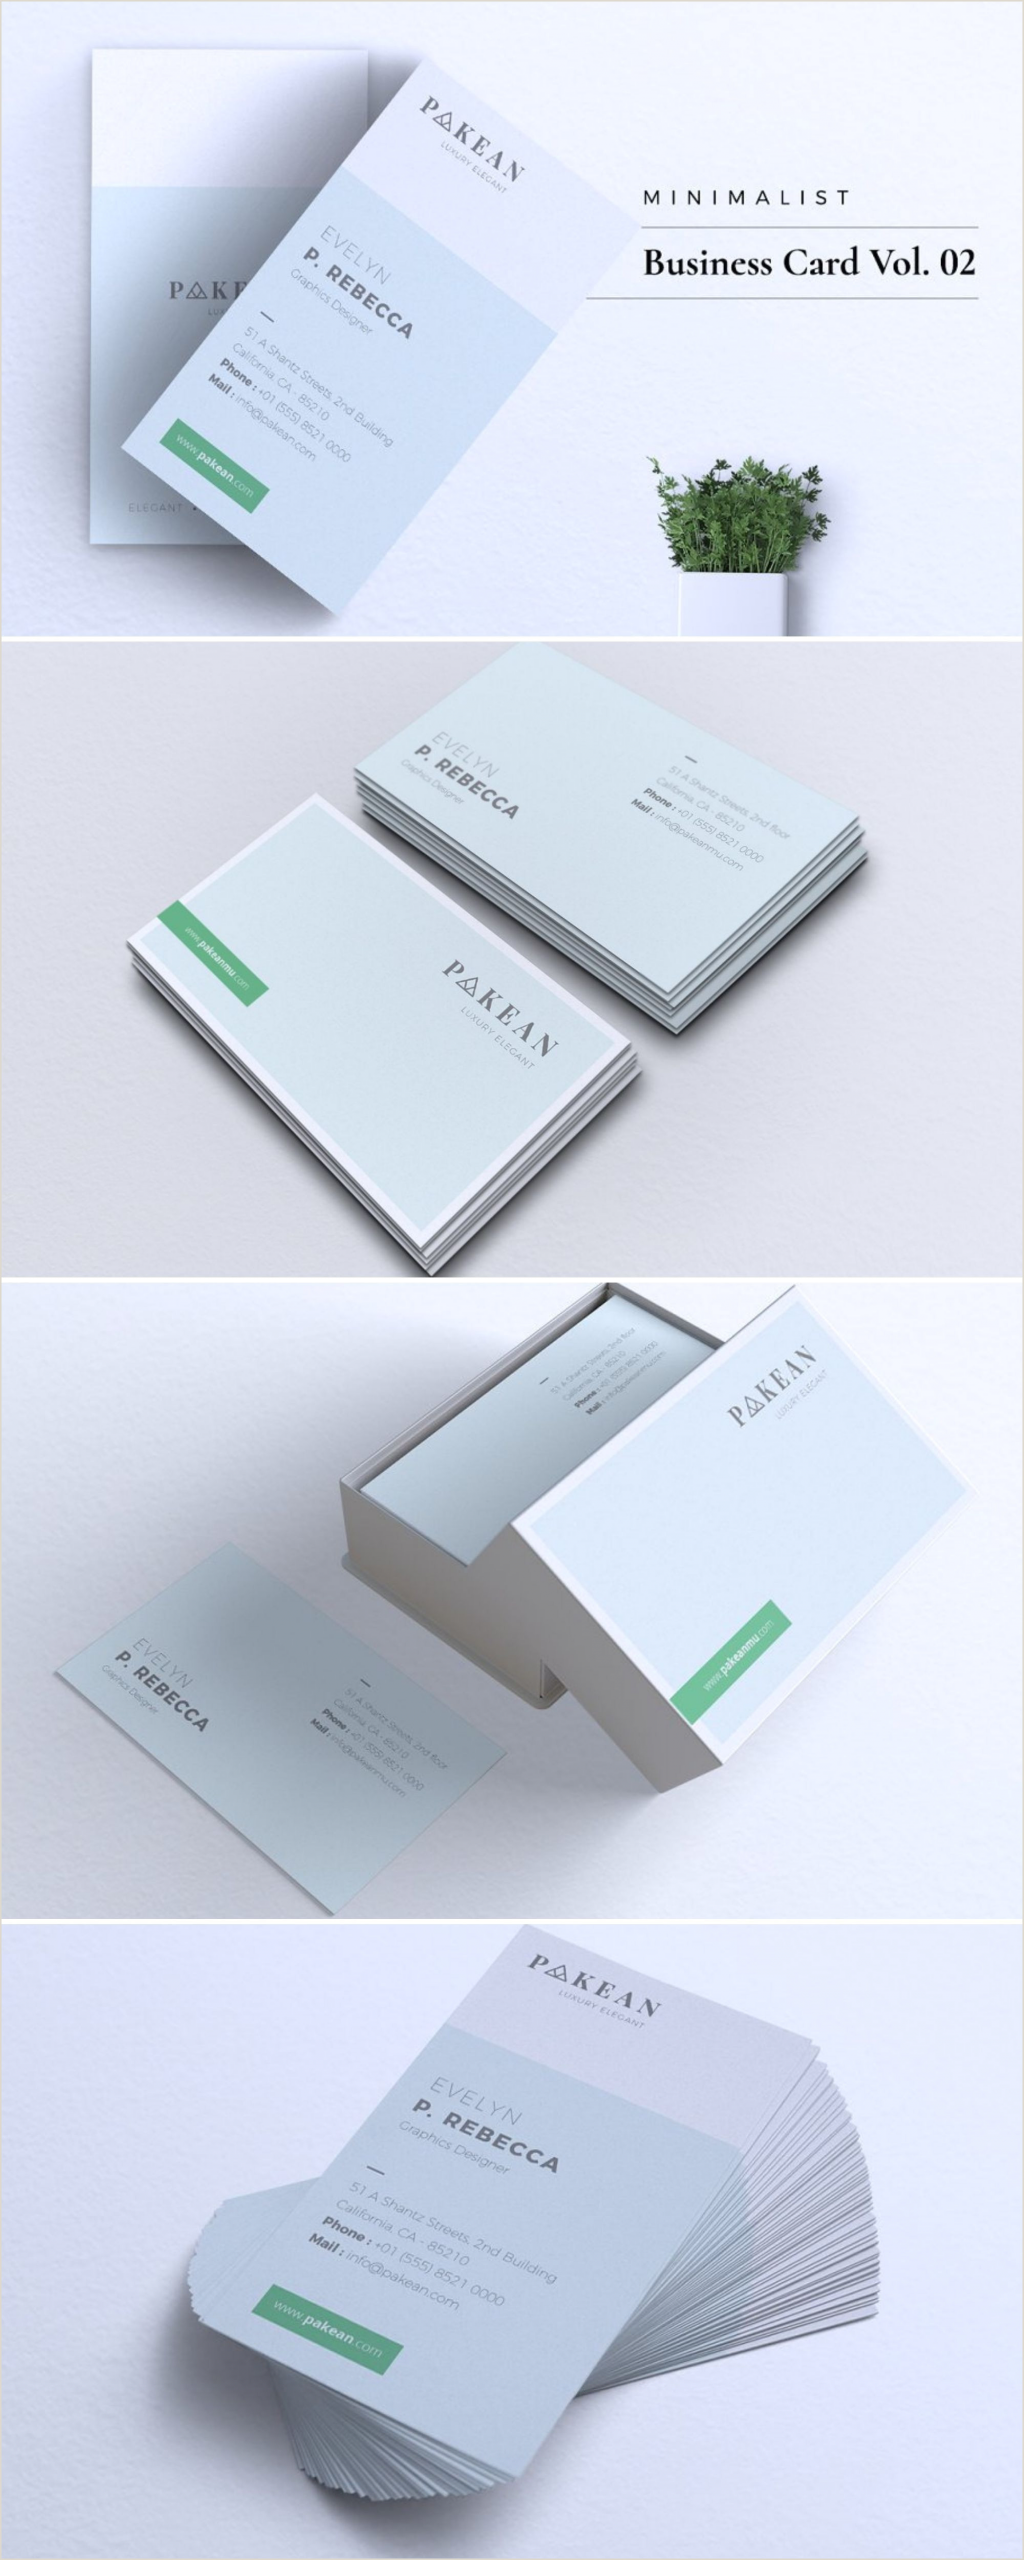 Simple Clean Business Cards Minimalist Business Card Vol 02